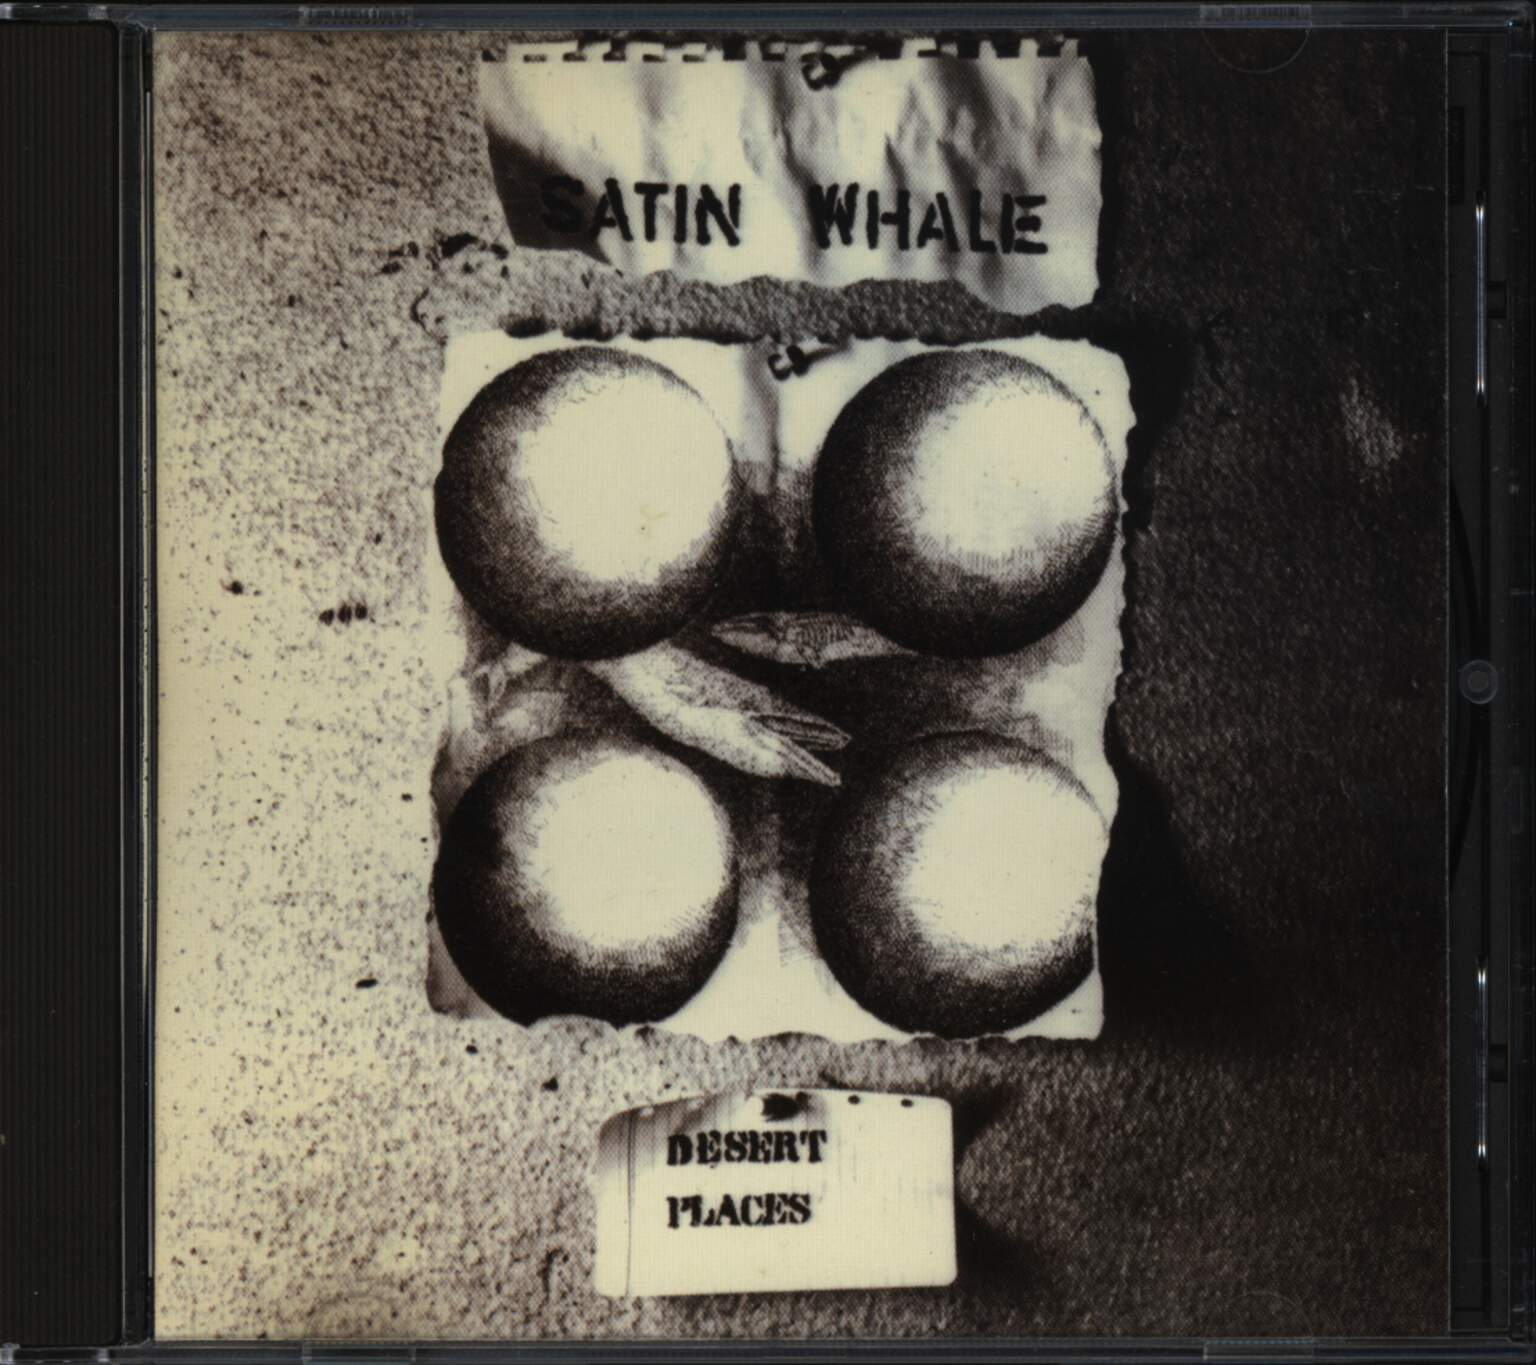 Satin Whale: Desert Places, CD